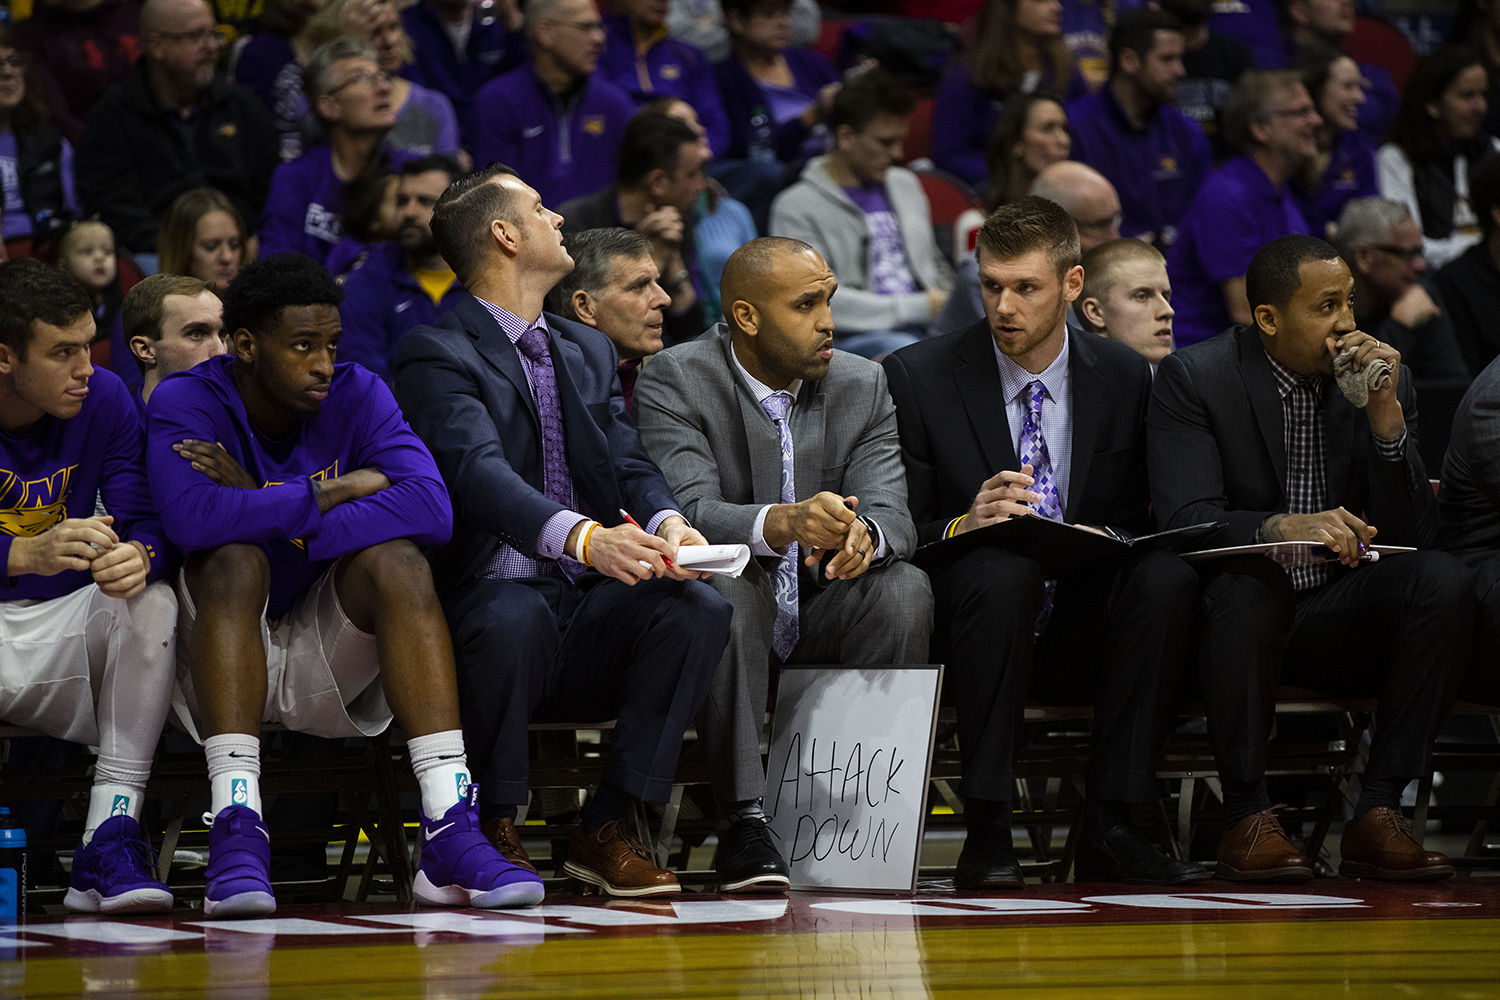 UNI+coaches+hold+a+white+board+during+the+Iowa%2FUNI+men%27s+basketball+game+at+Wells+Fargo+Arena+in+Des+Moines+on+Saturday%2C+Dec.+15%2C+2018.+The+Hawkeyes+defeated+the+Panthers%2C+77-54.+